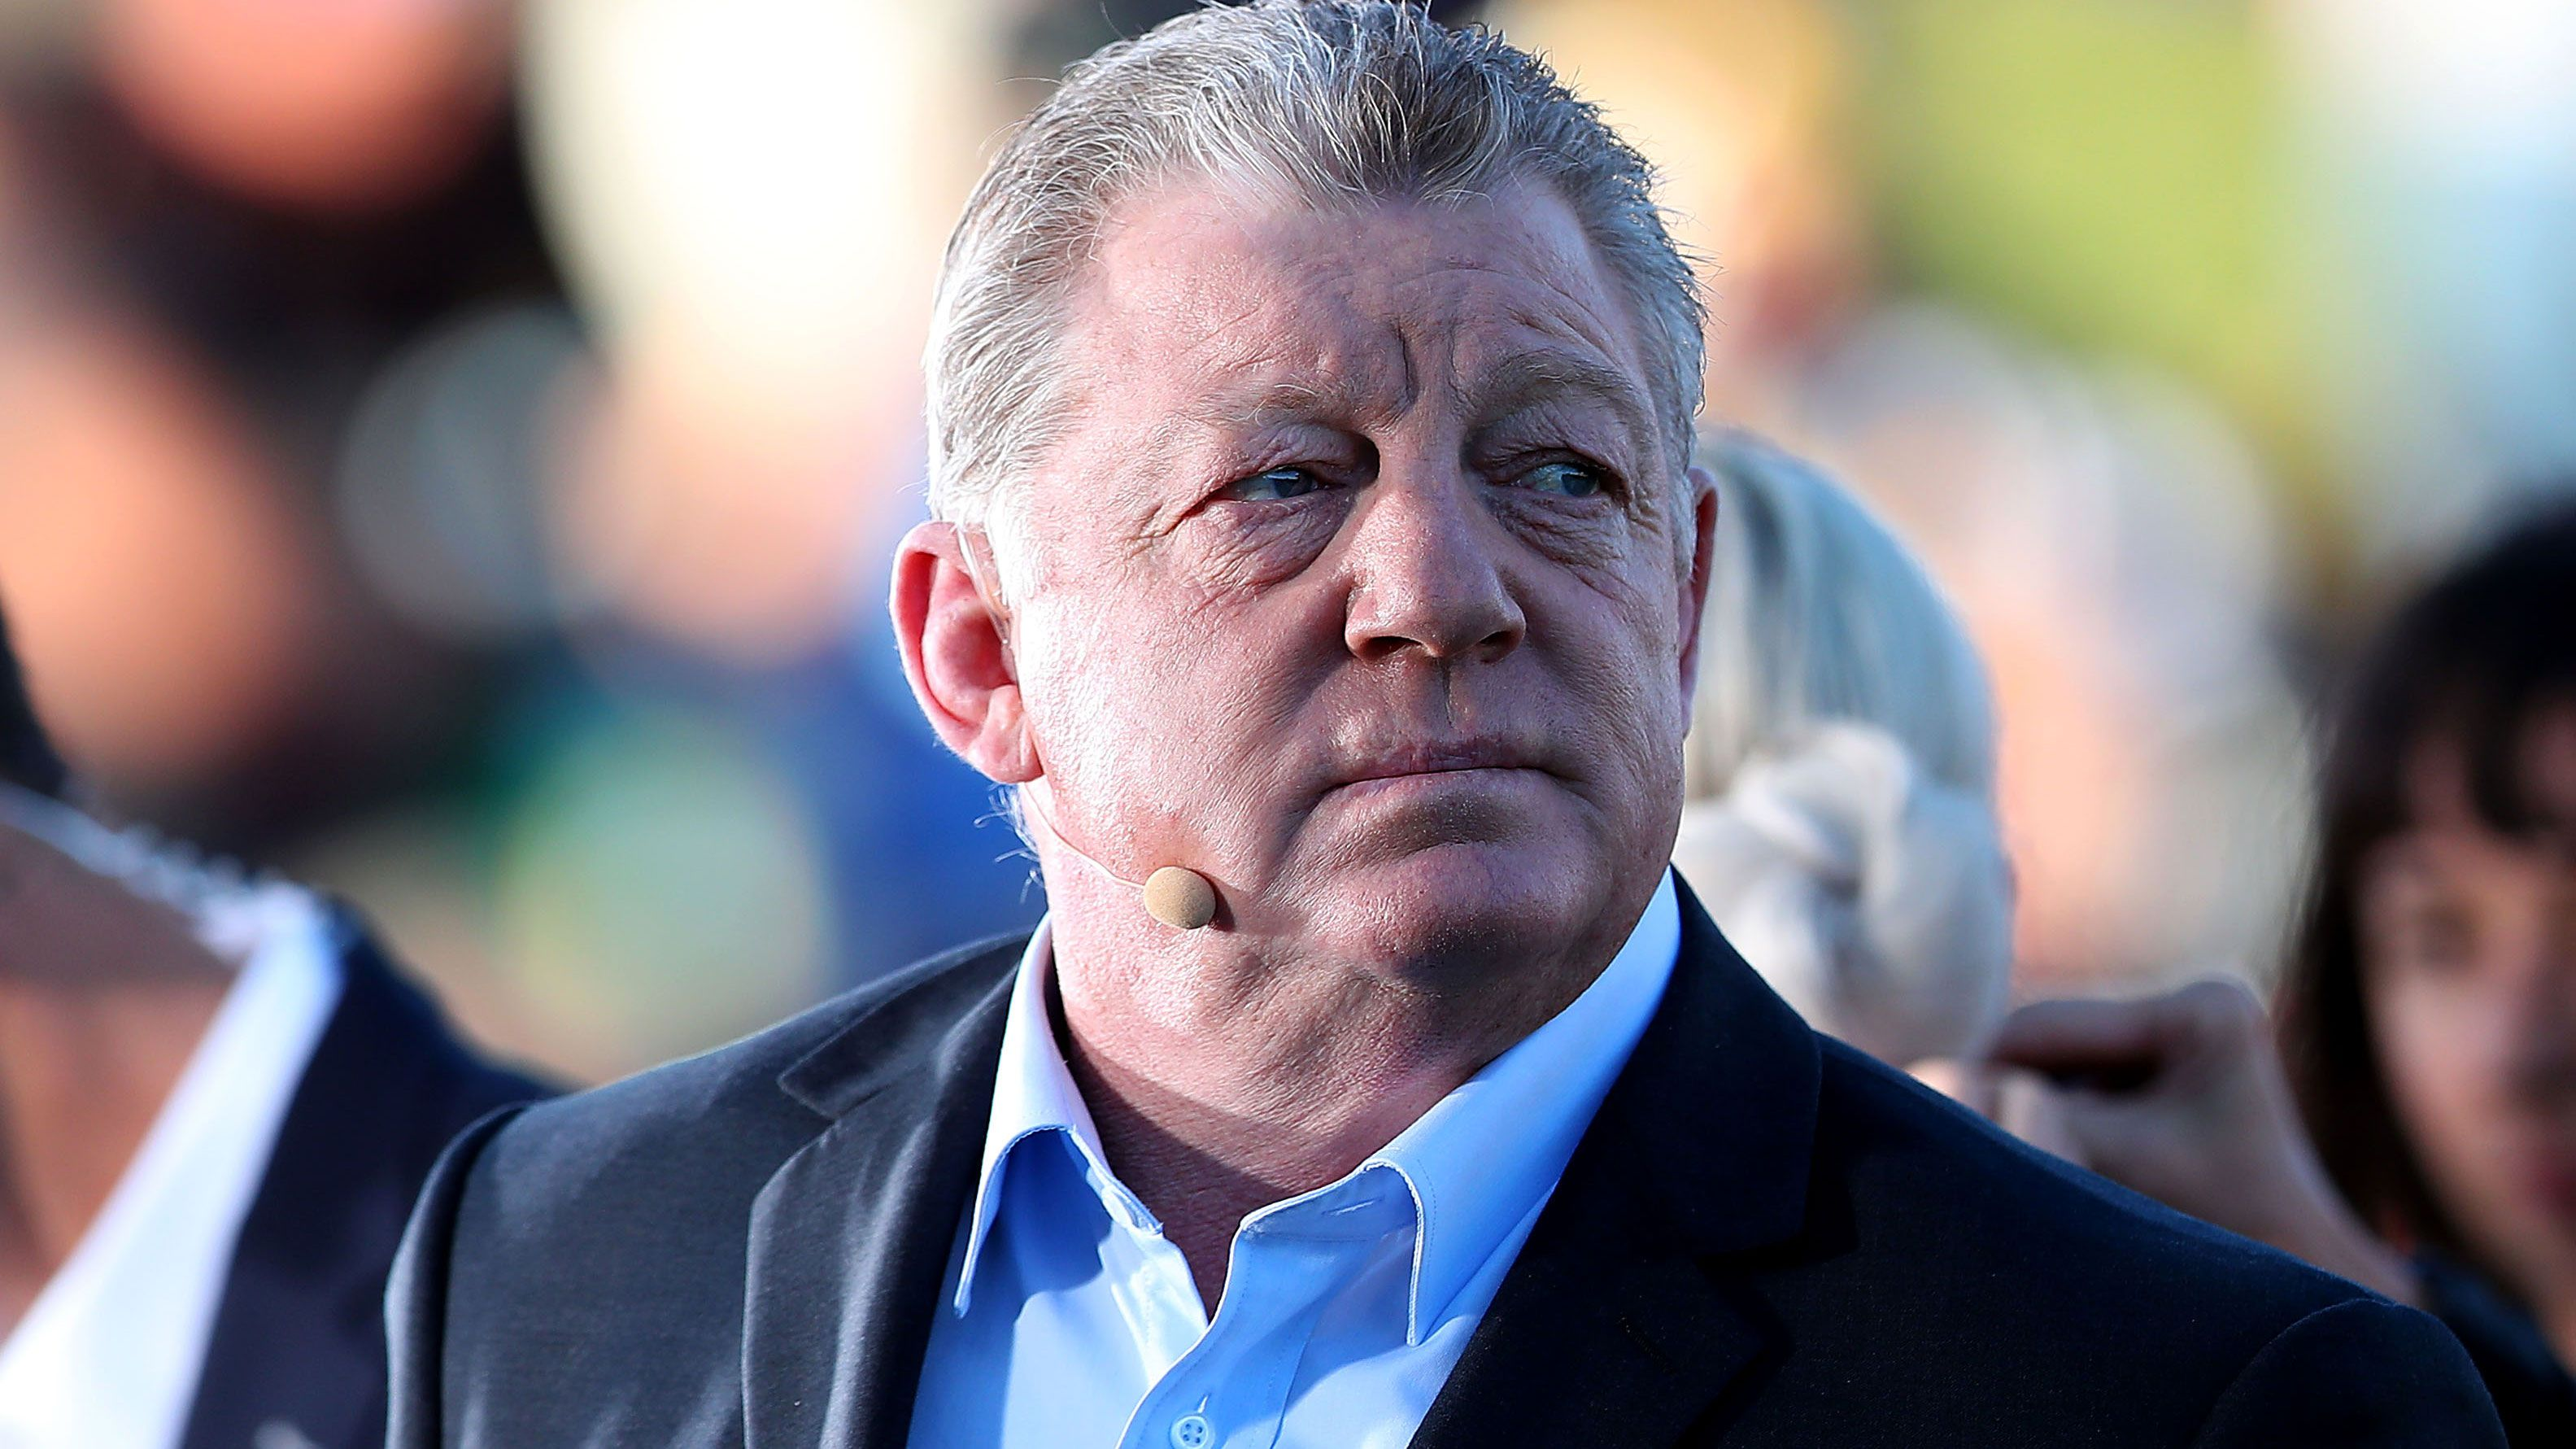 'Sick' Phil Gould drops hammer on NRL referees after Round 19 action